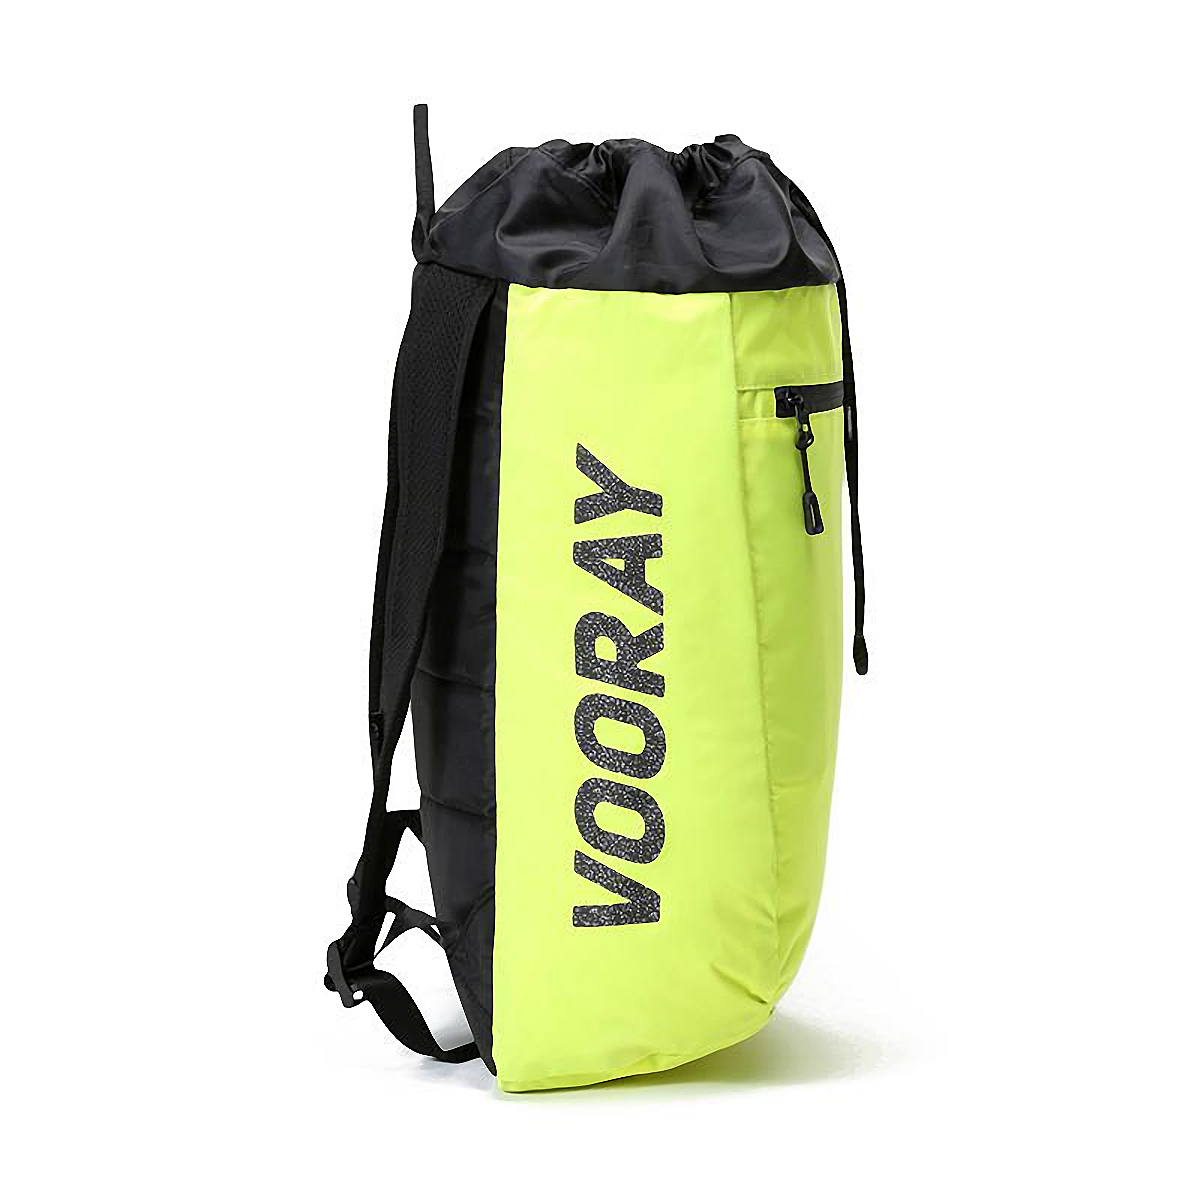 Vooray Stride Cinch Backpack - Color: Neon Yellow - Size: OS, Neon Yellow, large, image 2